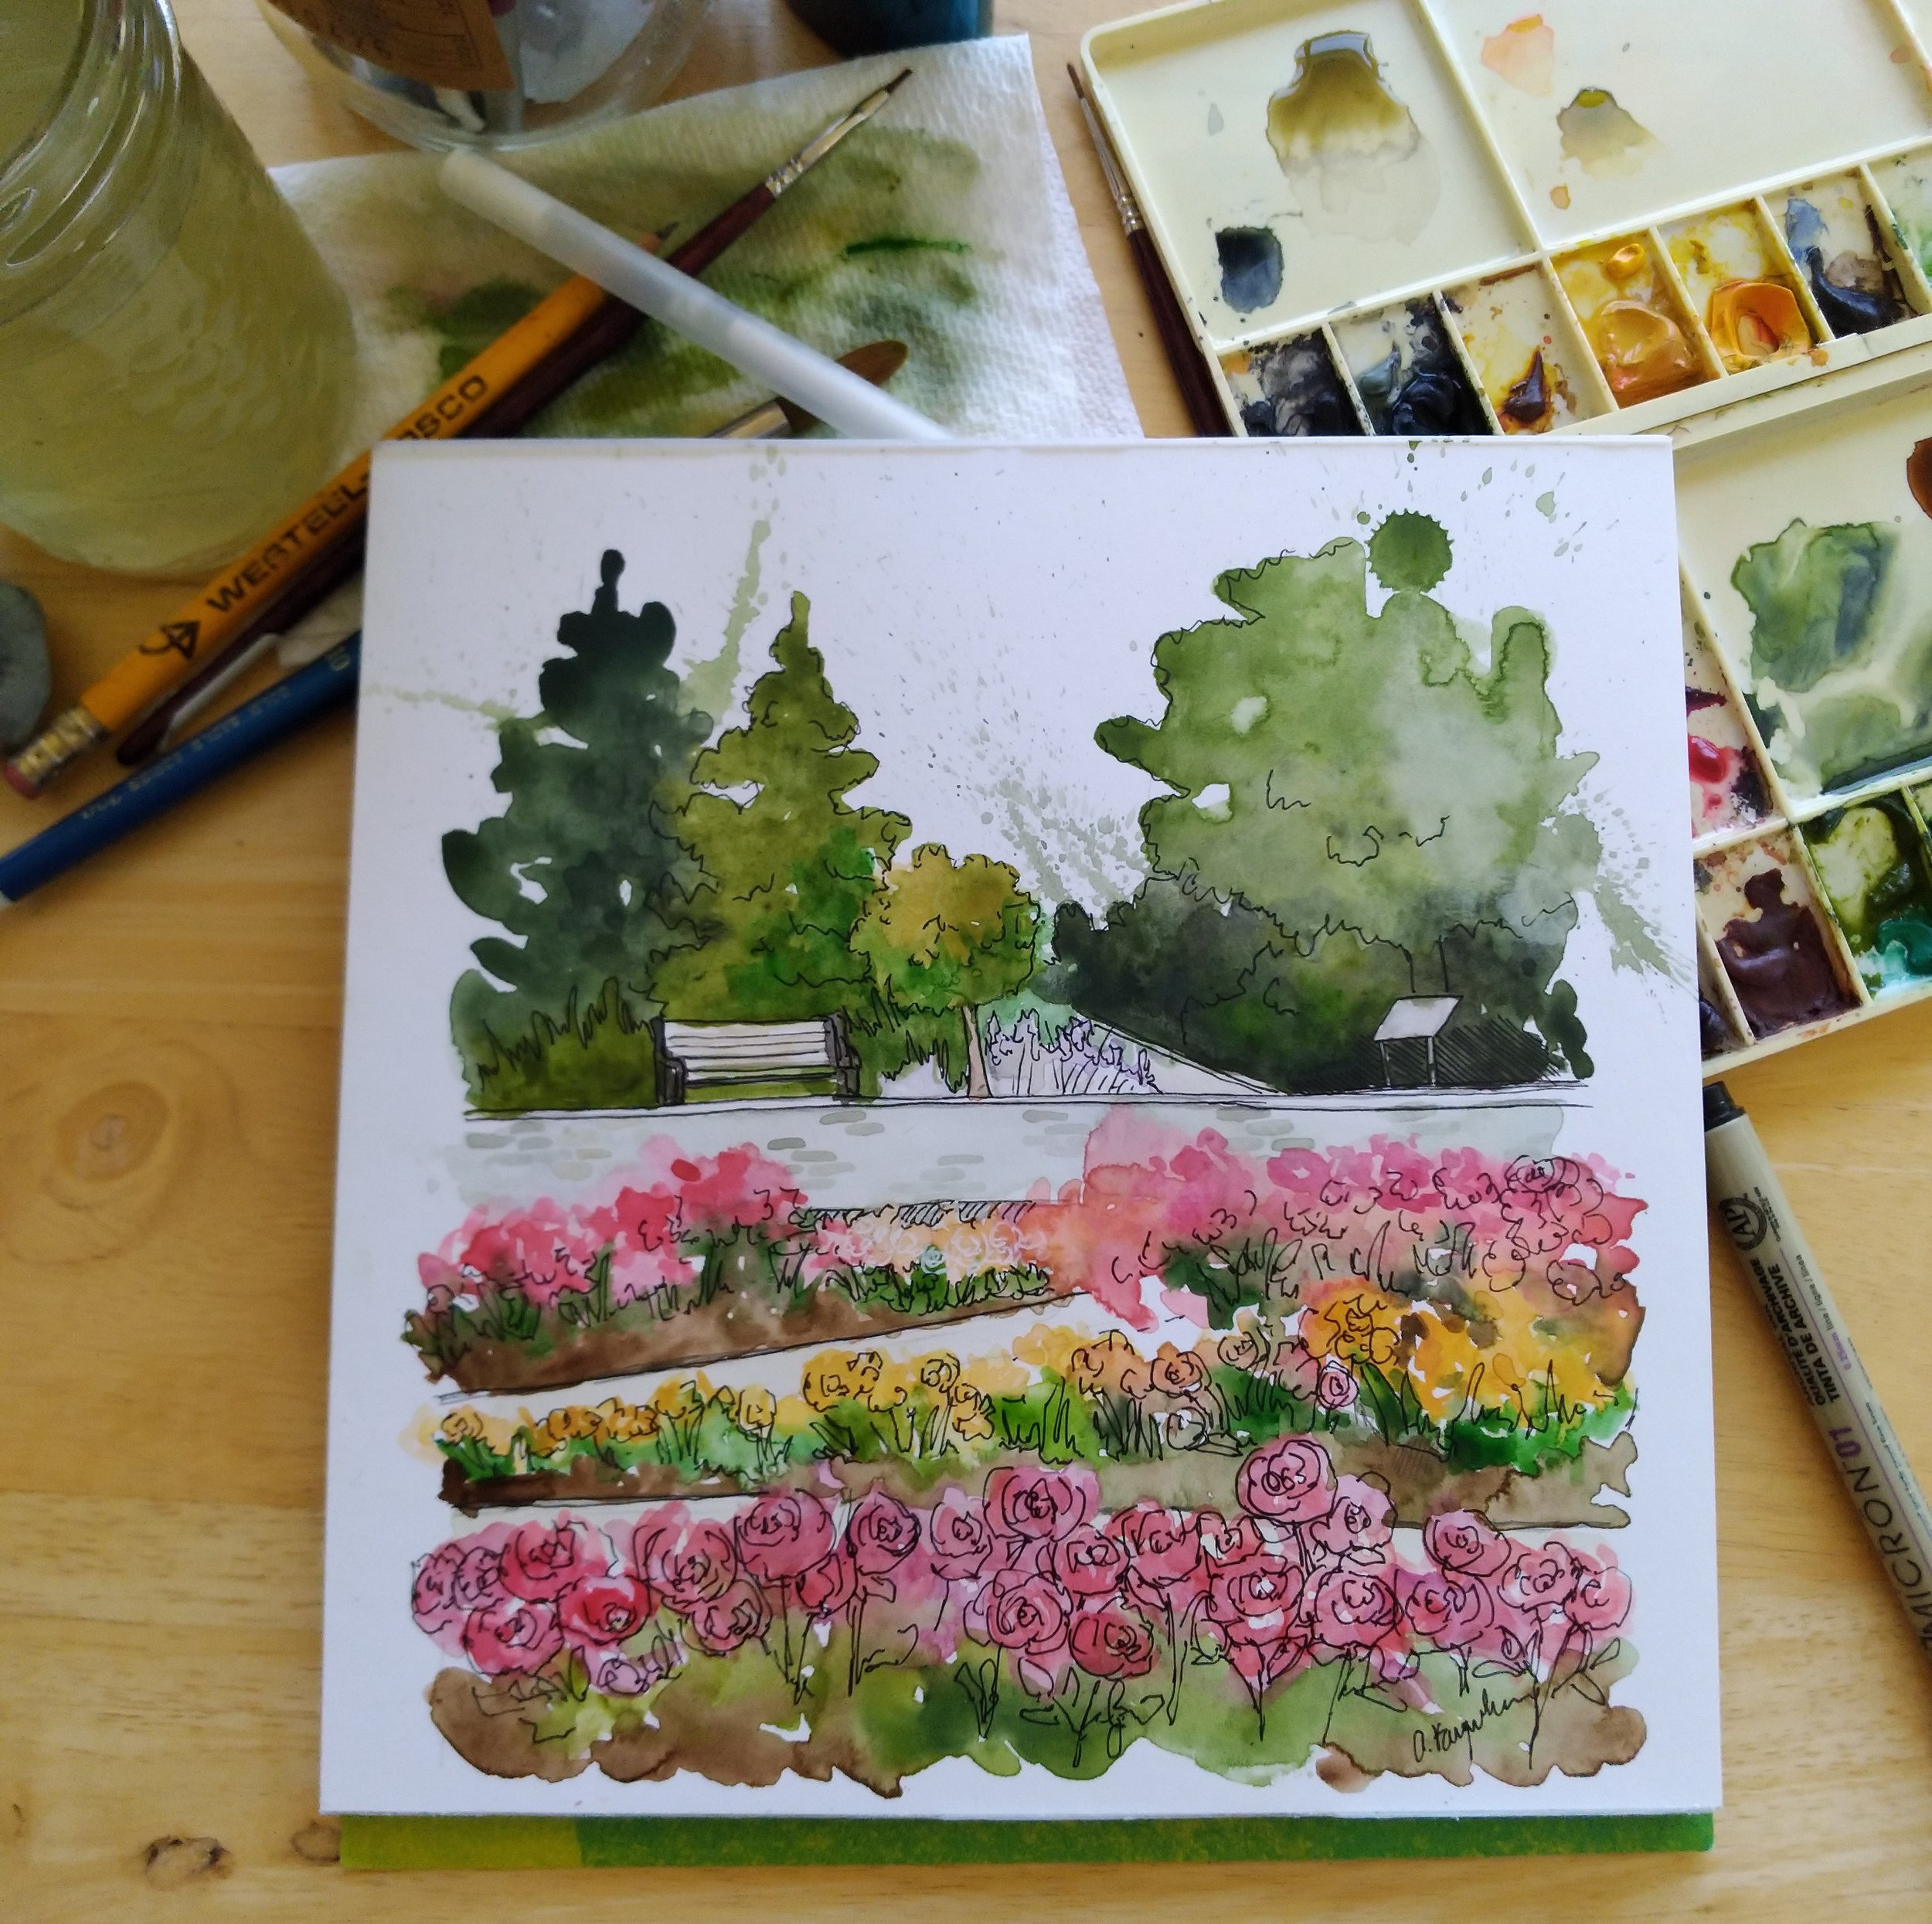 Watercolour rendition of the Rose Garden at the Royal Botanical Gardens by Amanda Farquharson